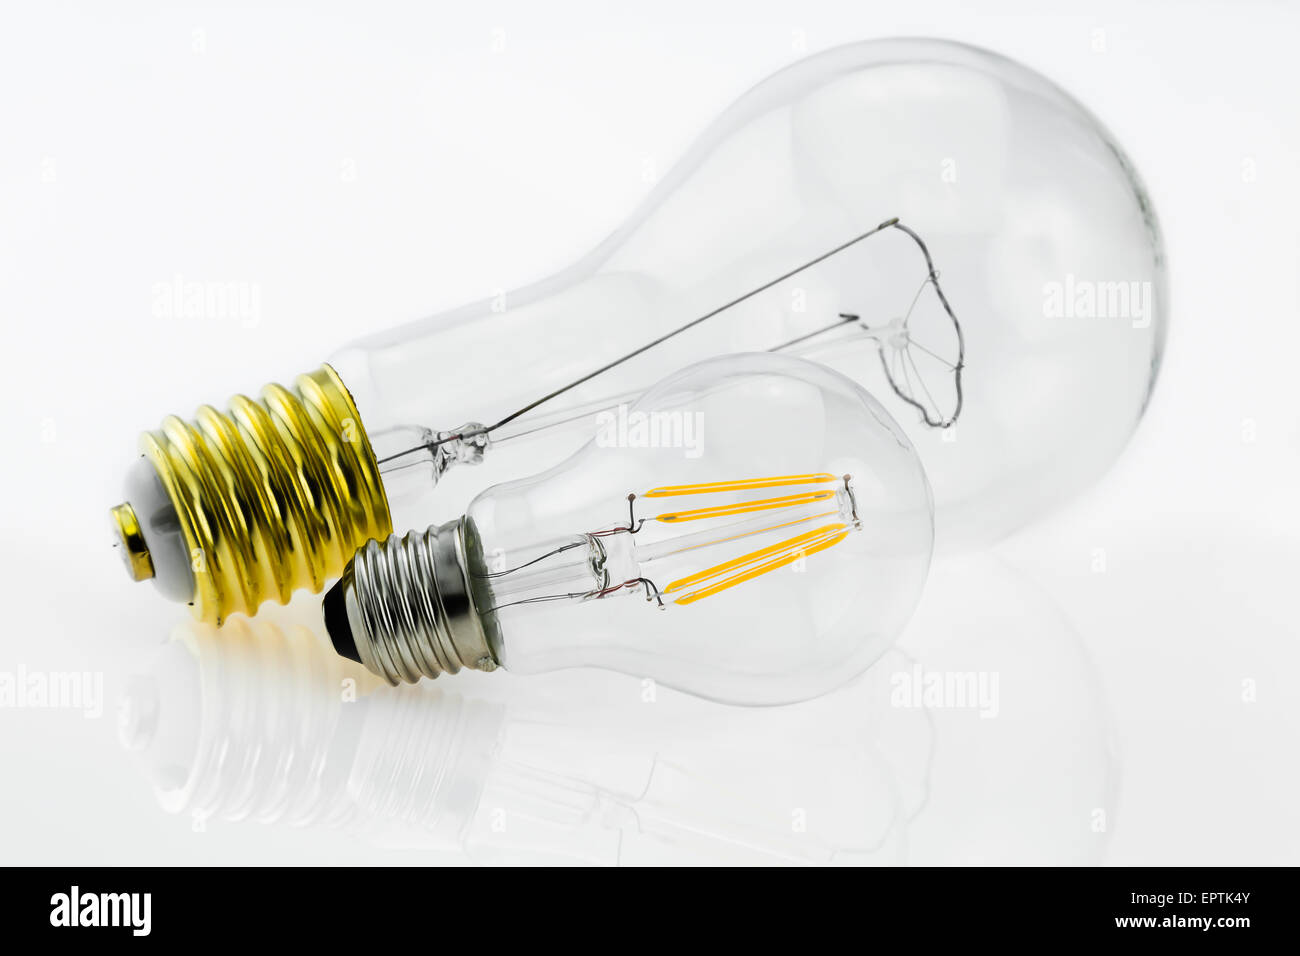 Led Bulb E27 10w Compared With 300w Tungsten E40 Stock Photo Alamy